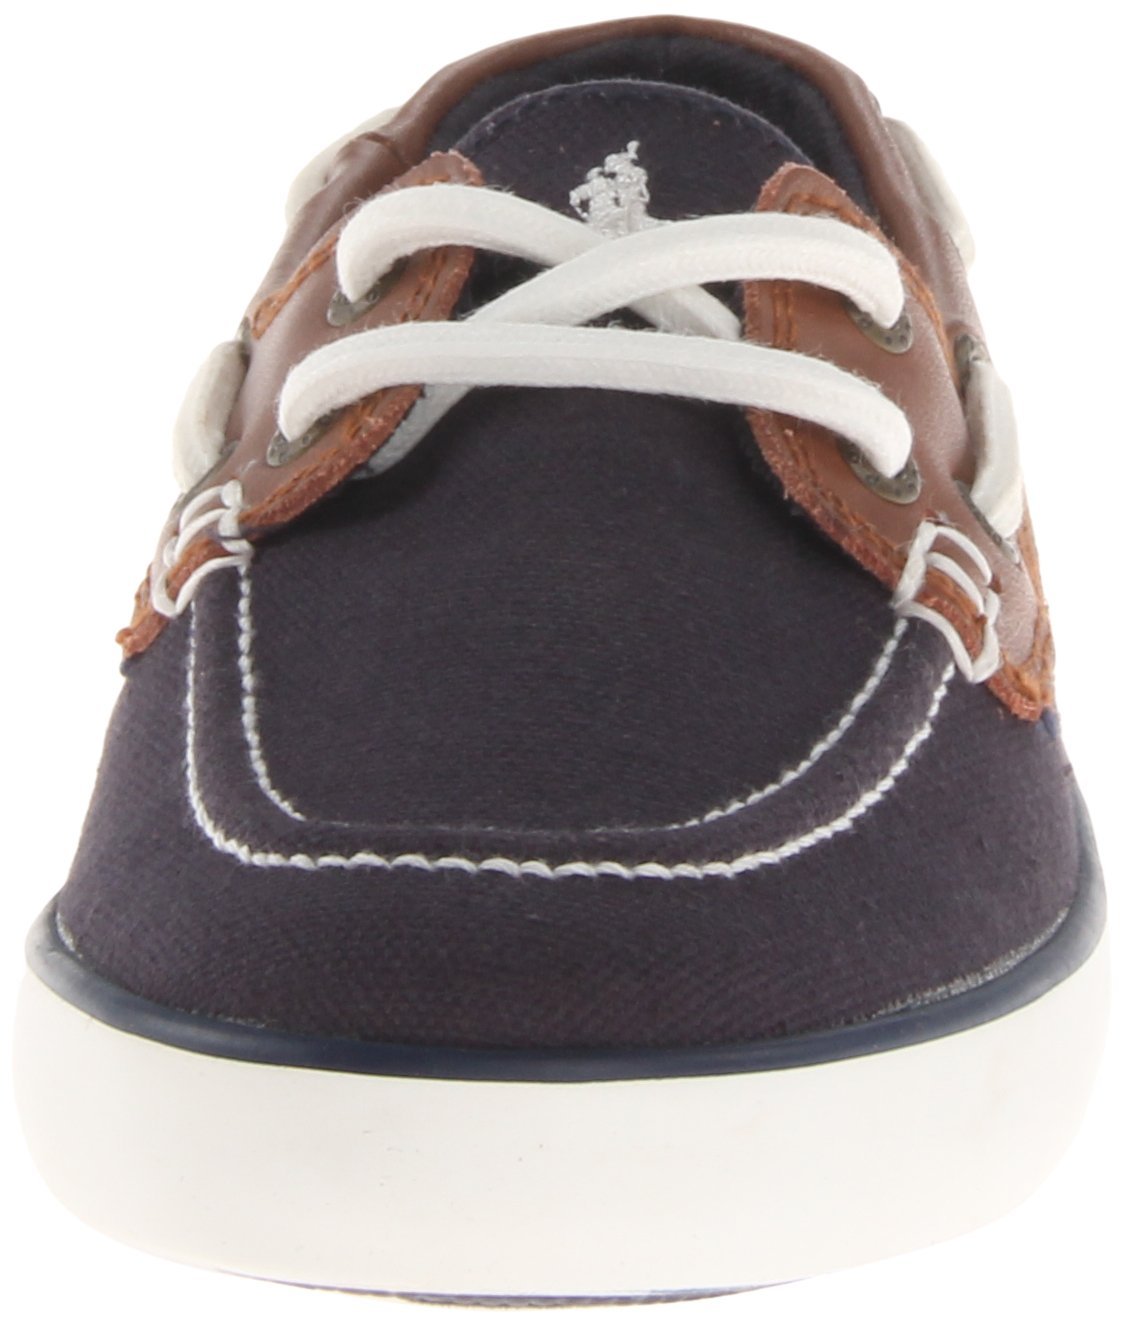 Polo Ralph Lauren Kids Sander-CL Sneaker (Toddler/Little Kid/Big Kid),Navy/Tan,5.5 M US Big Kid by Polo Ralph Lauren (Image #4)